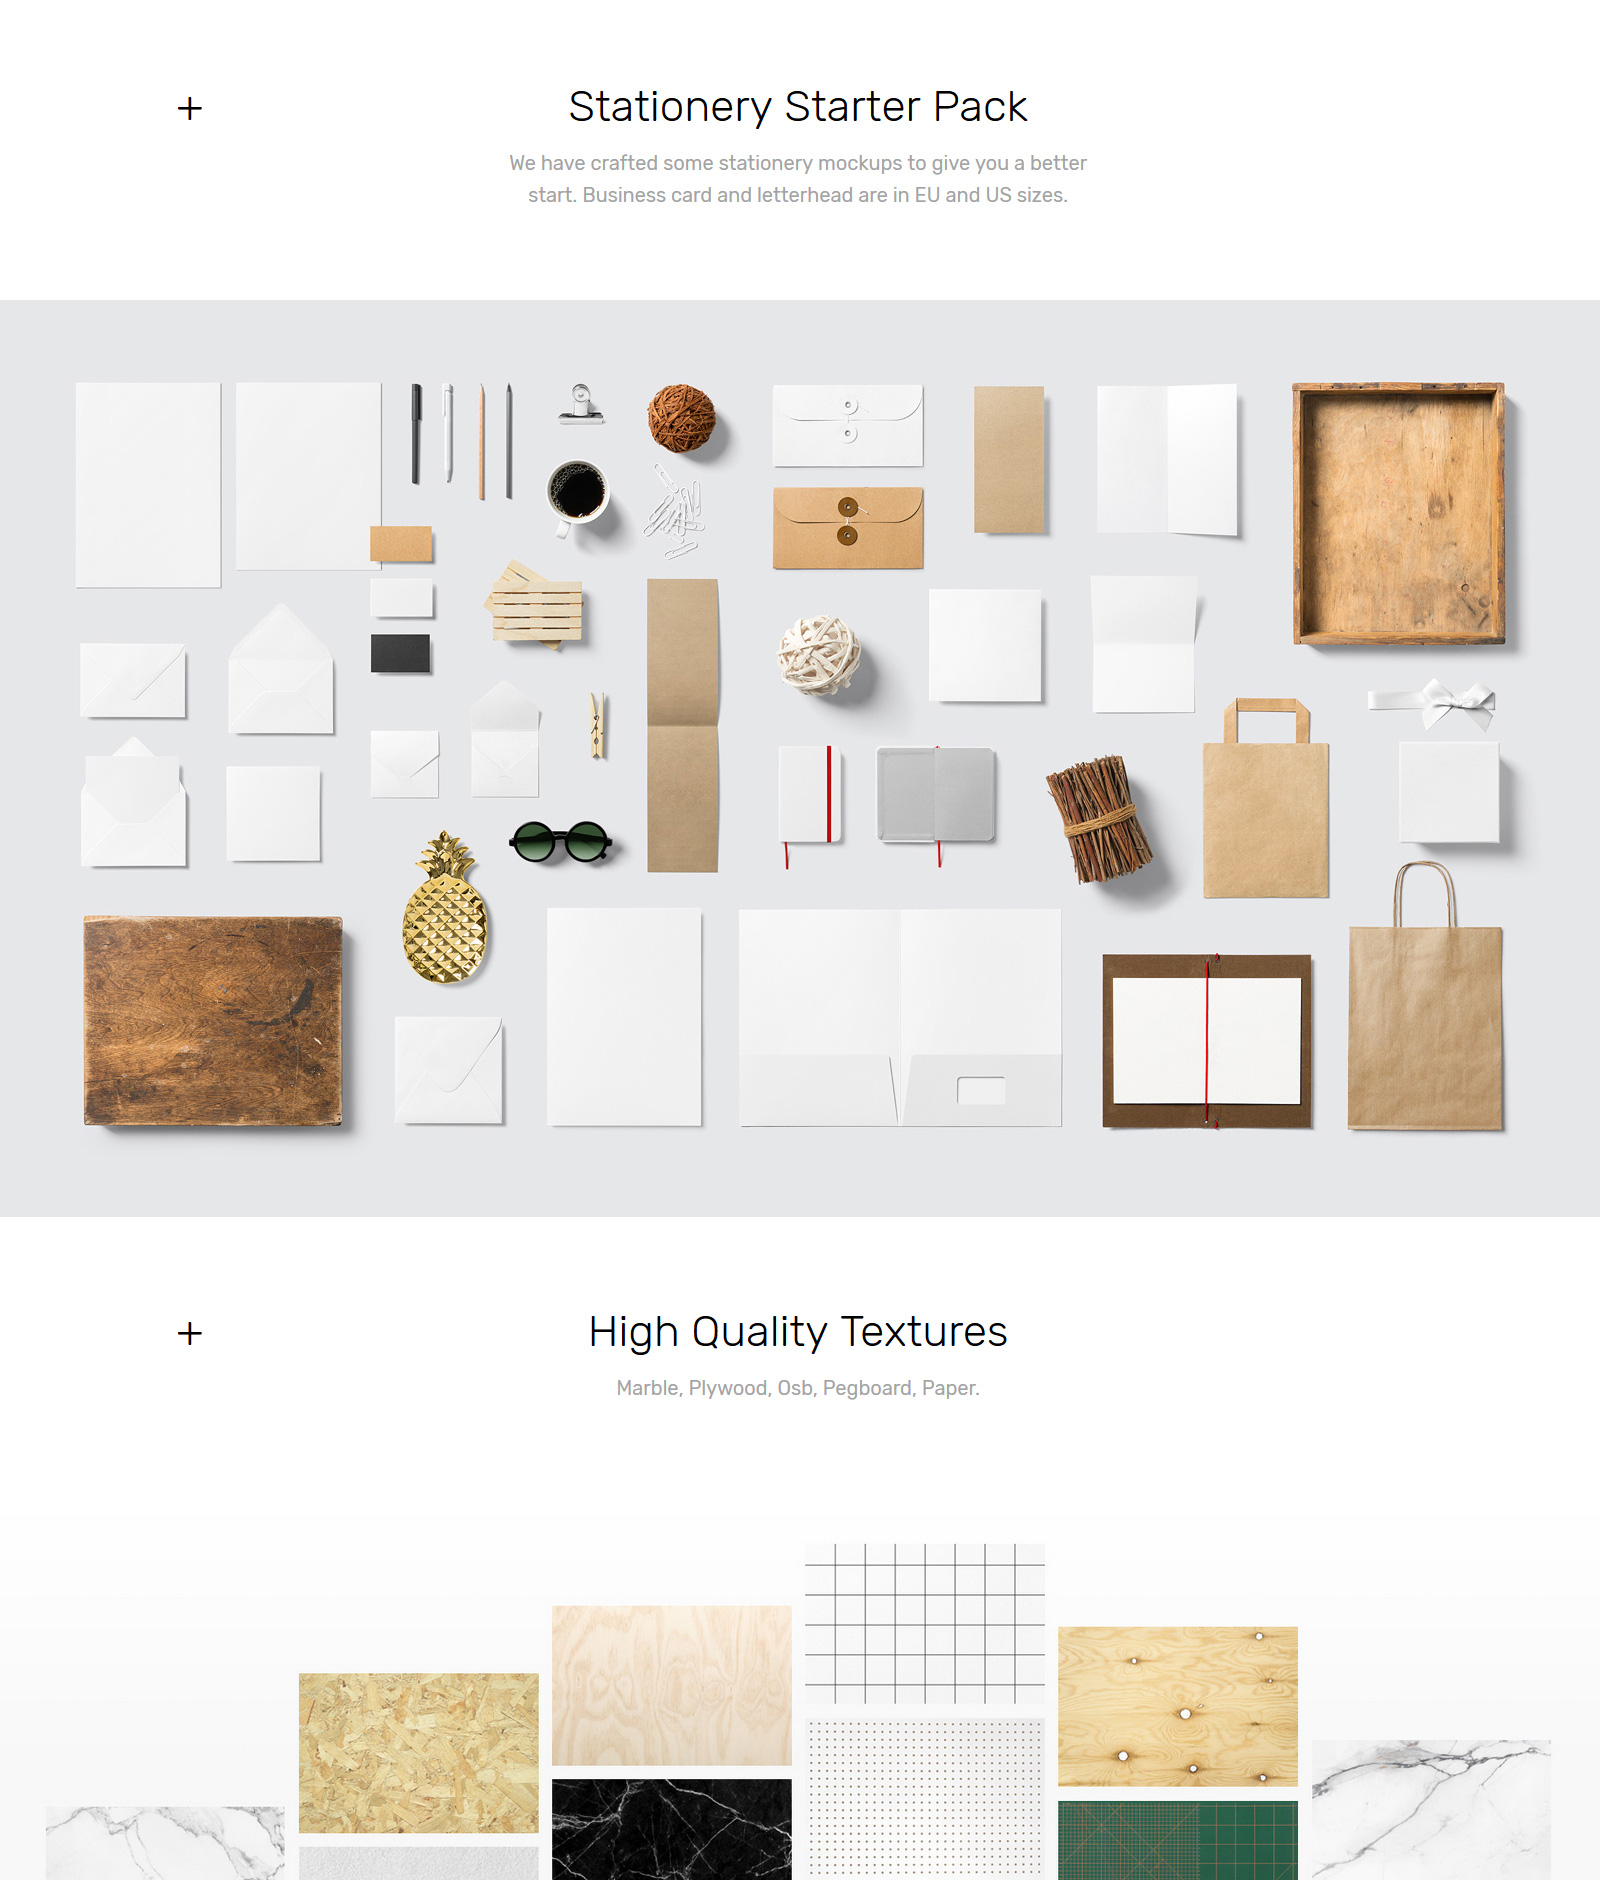 Floral Mockups Stationery Pack In Stationery Mockups On Yellow